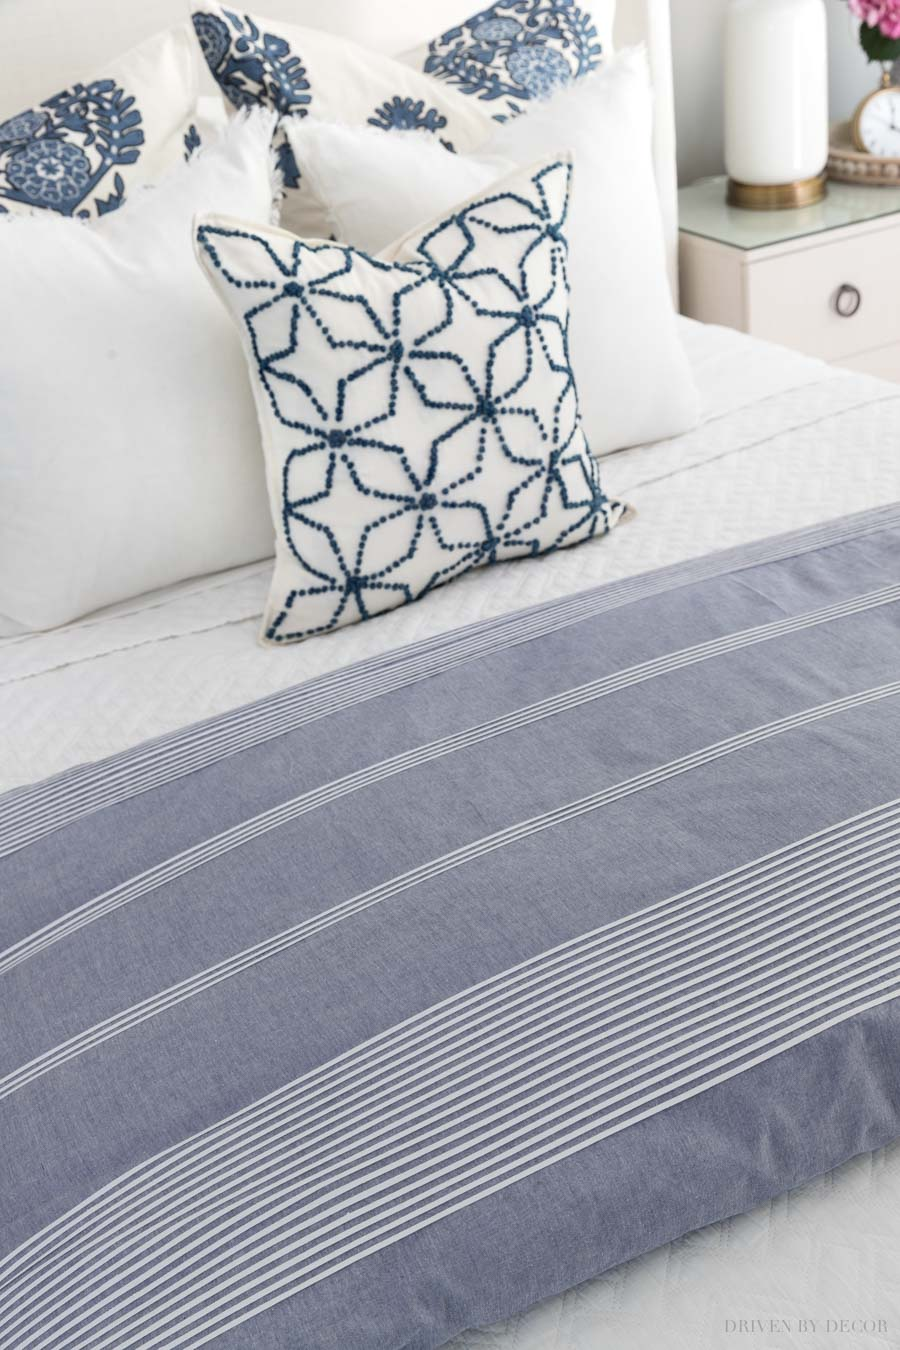 Gorgeous blue and white stripe duvet cover! One of the essentials in this helpful bed making 101 post!